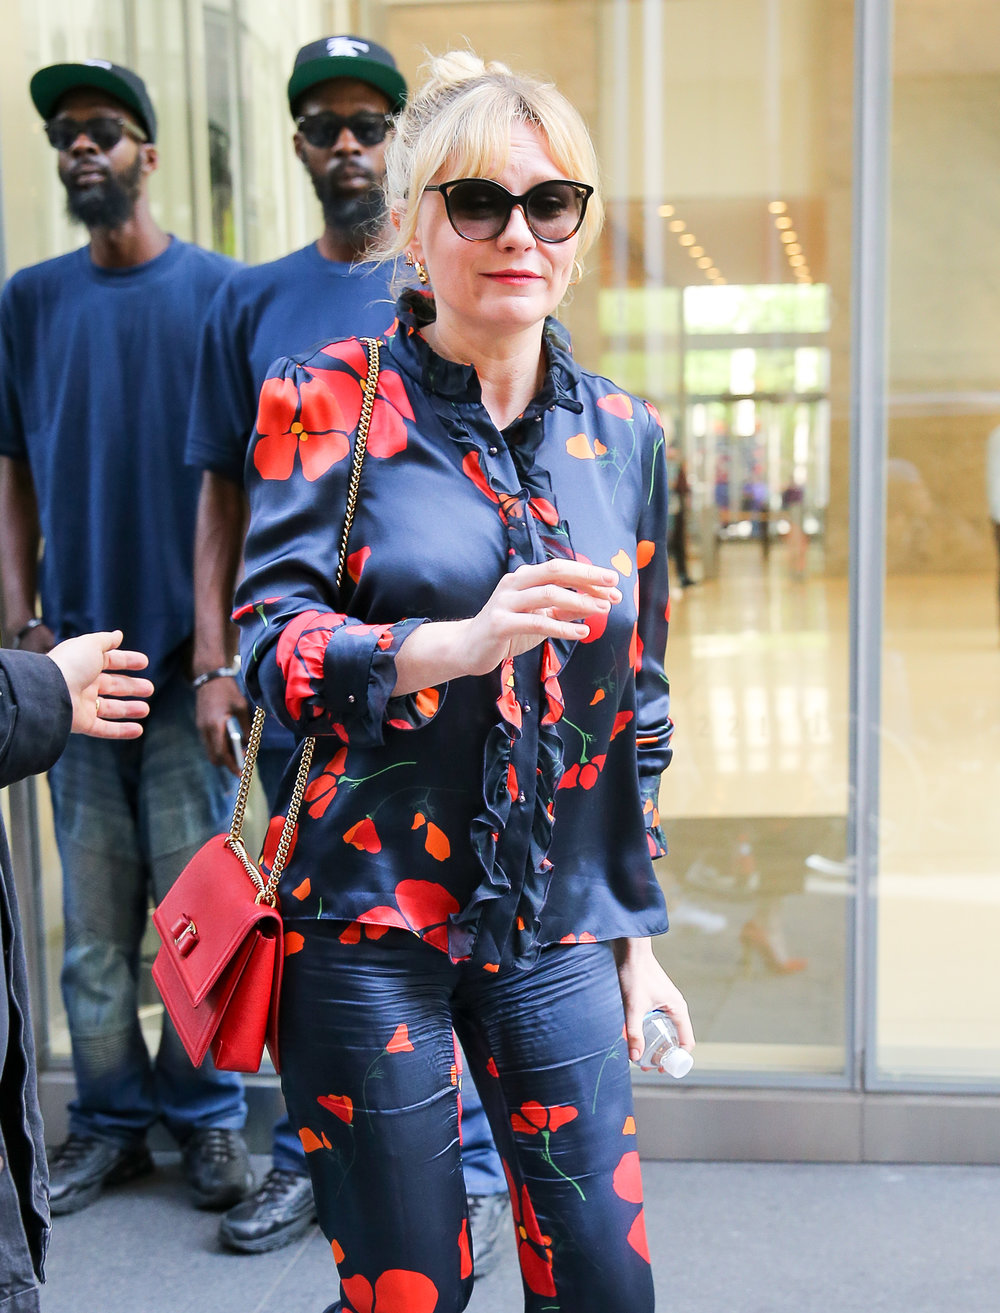 51649616_kirsten-dunst-steps-out-in-a-stylish-red-and-black-satin-outfit-in-new-york-ci.jpg